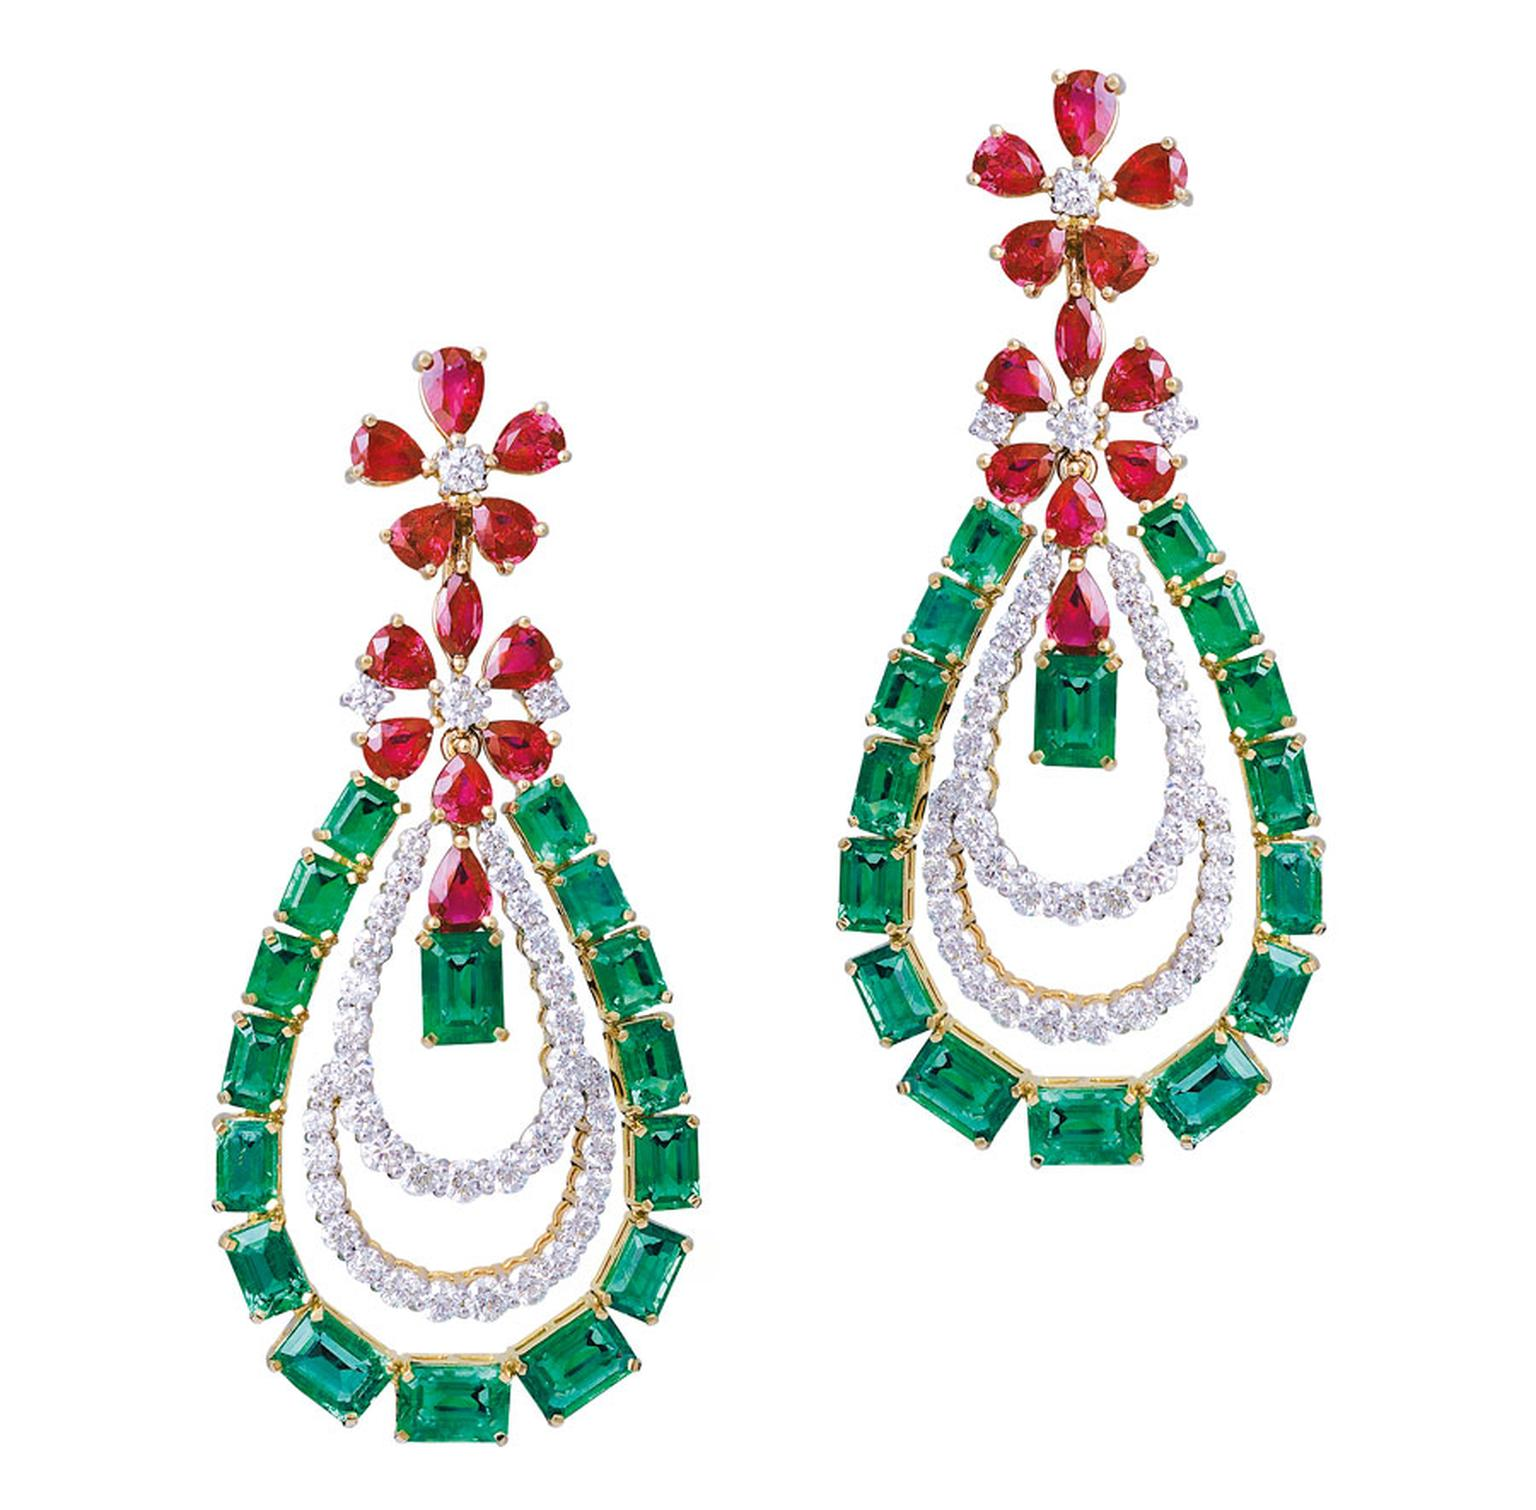 Gemfields-Farah-Khan-earrings-with-Gemfields-rubies-and-emeralds-CMYK